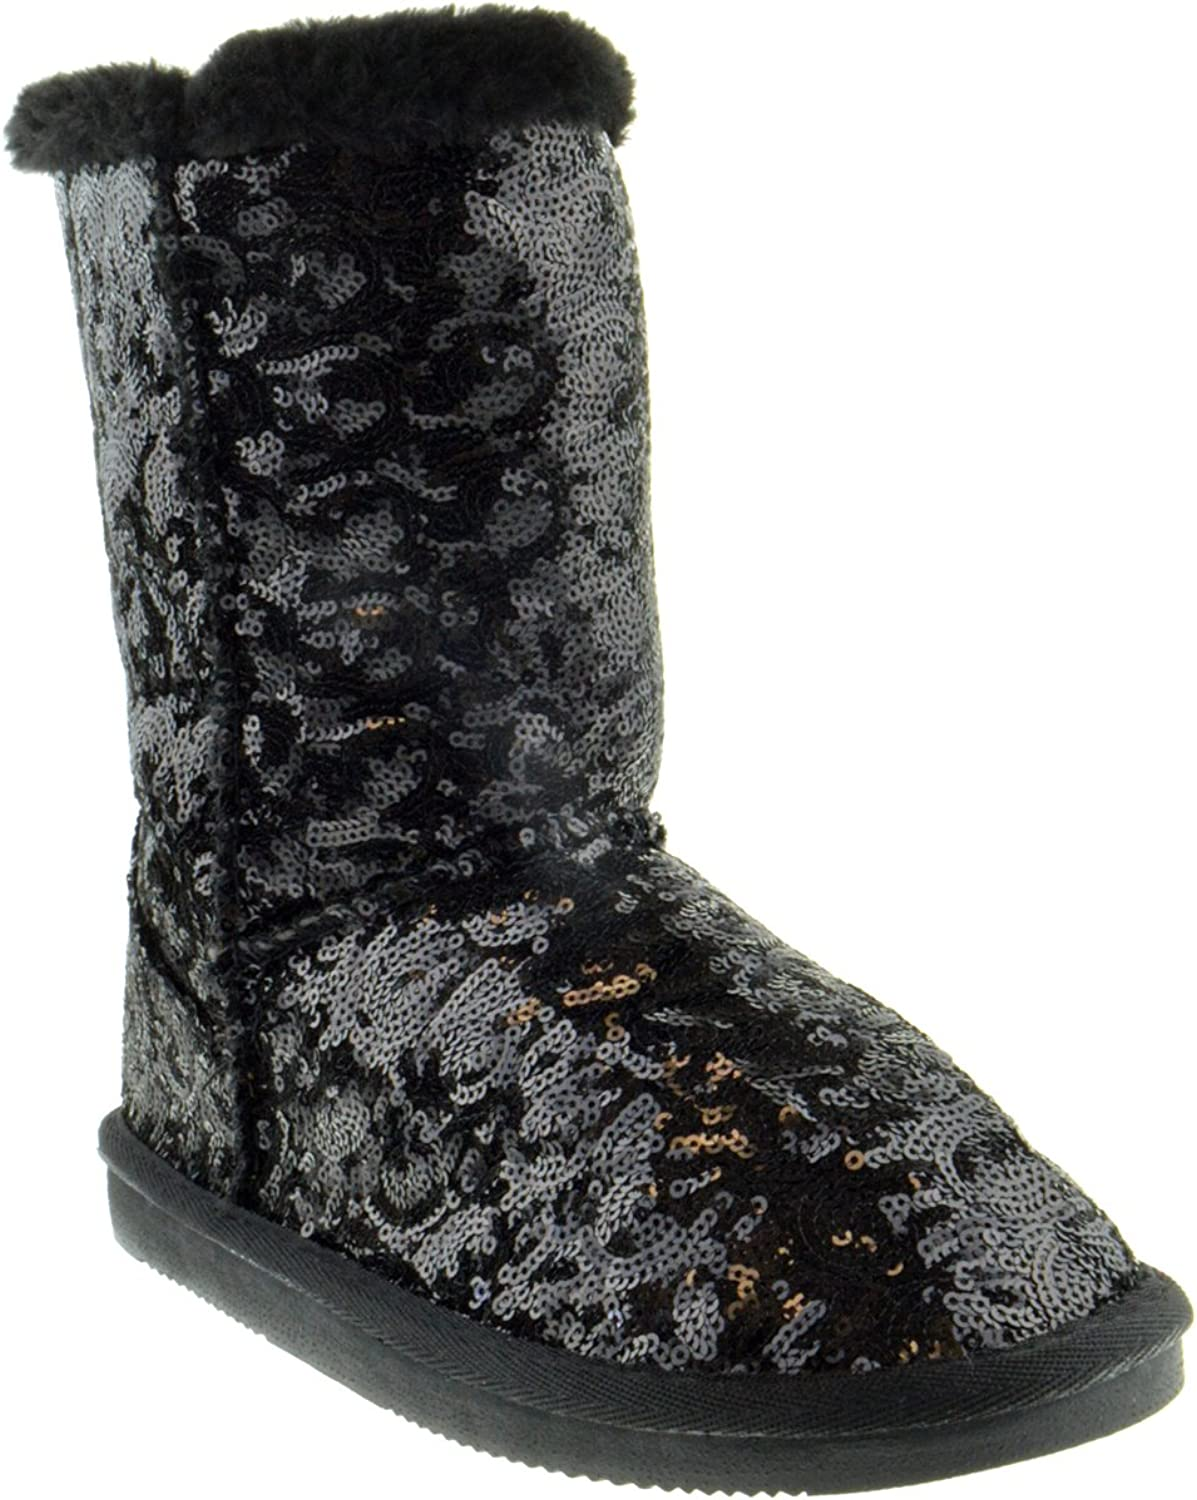 shoes Dezigns Bling Womens Sequin Faux Fur Shearling Boots